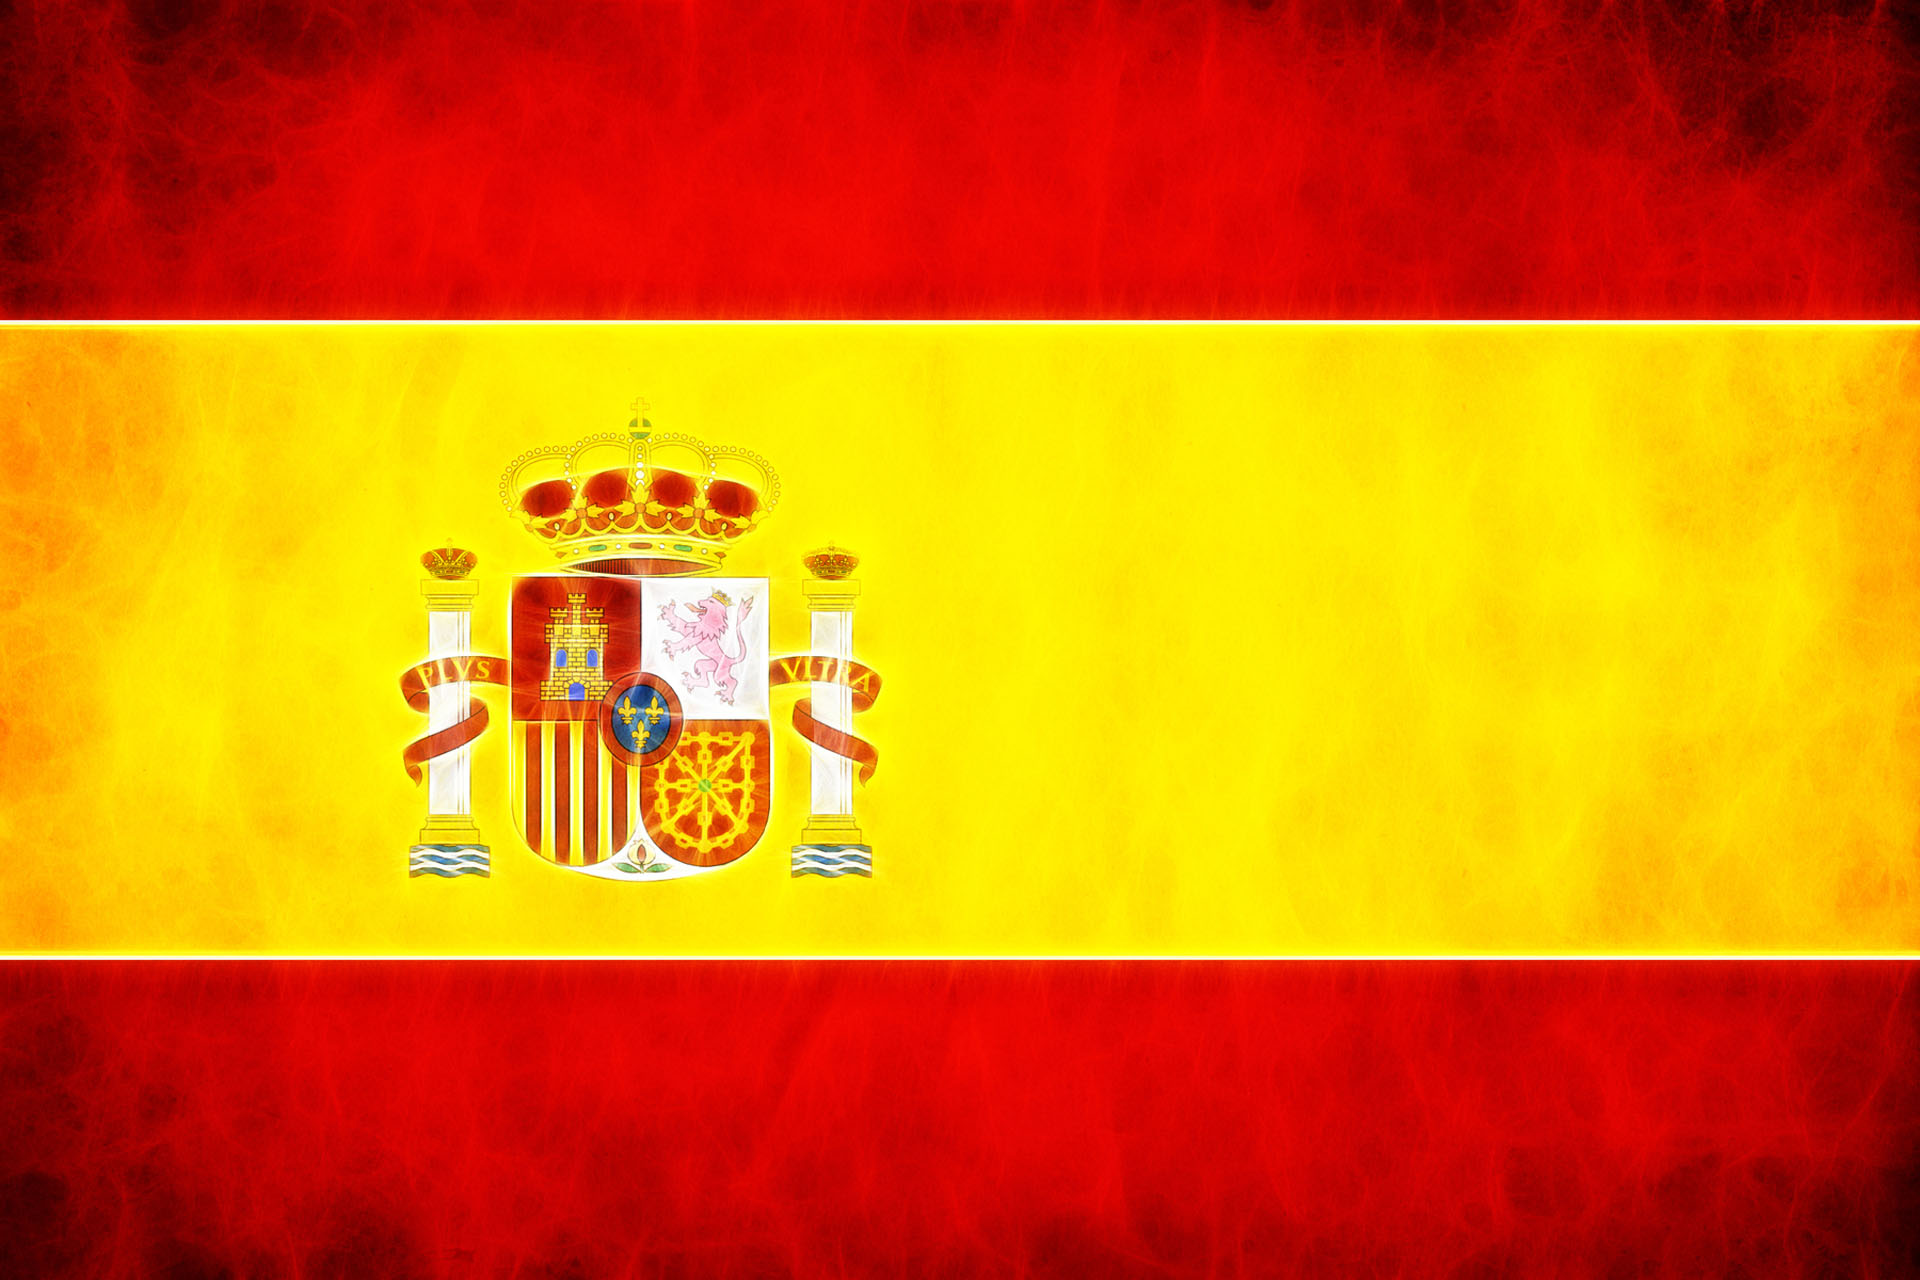 spain-flag-closeup-image